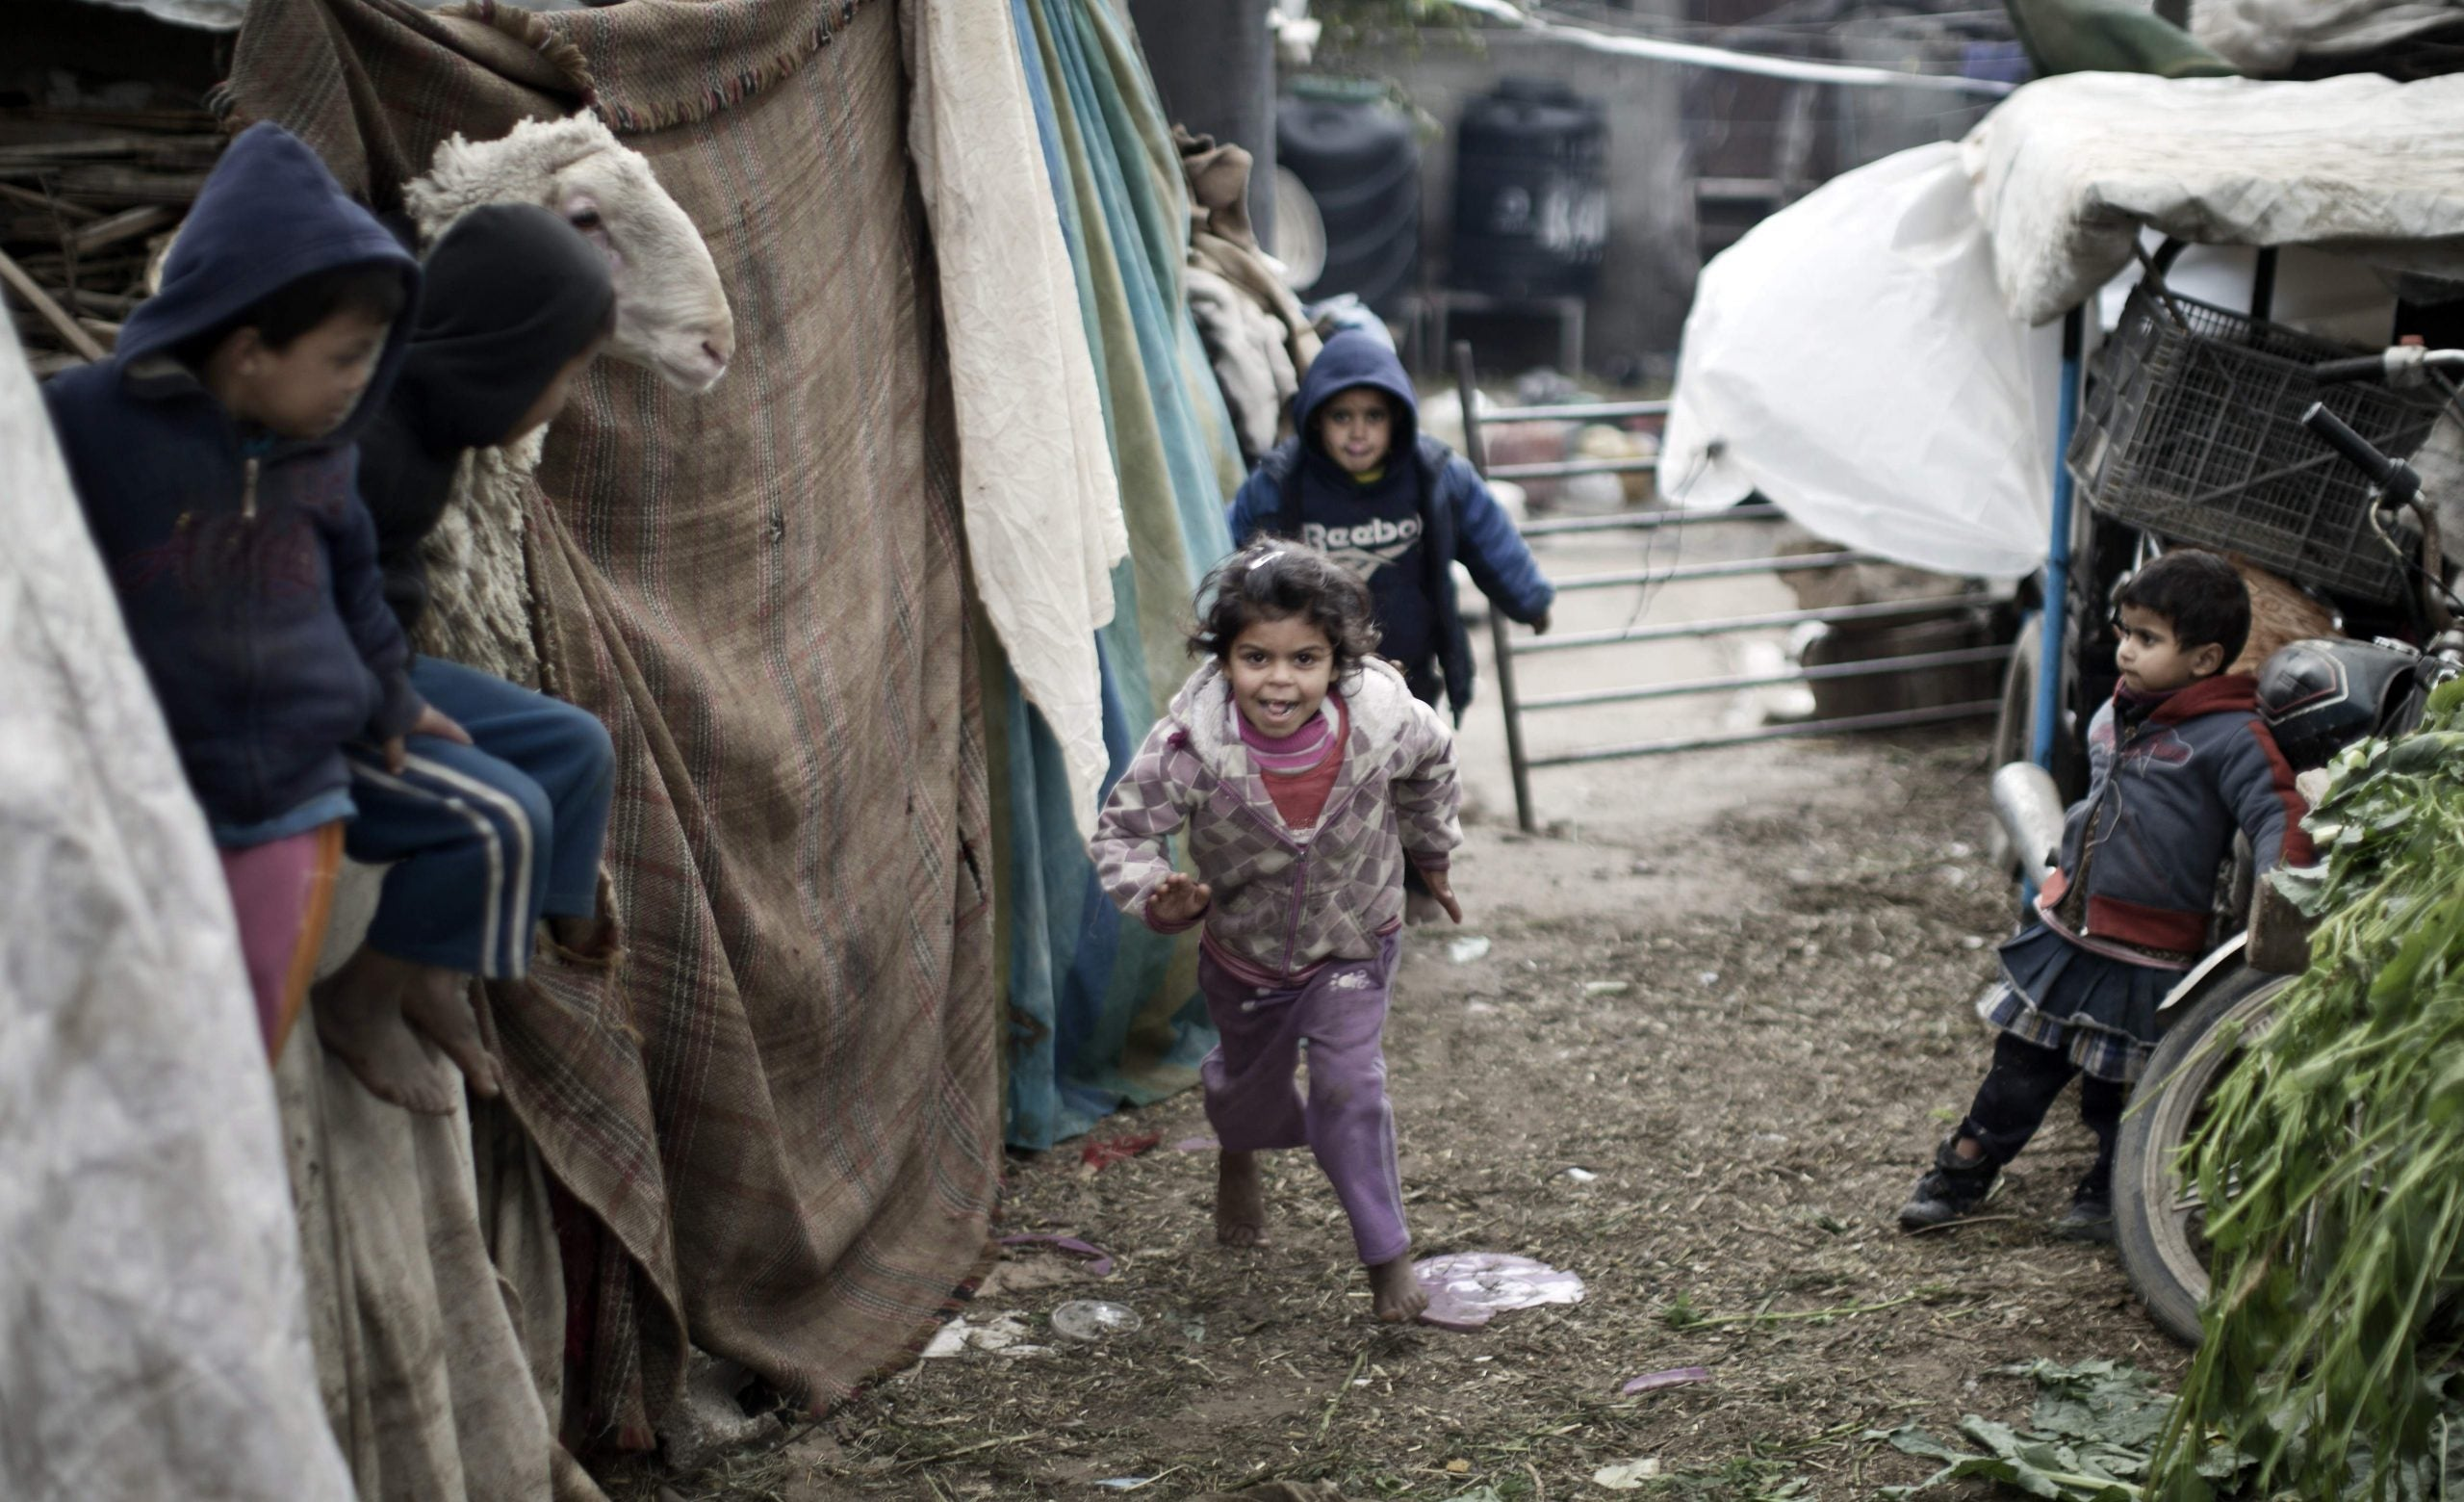 Why Europe should be central to ensuring the world's poorest are not forgotten